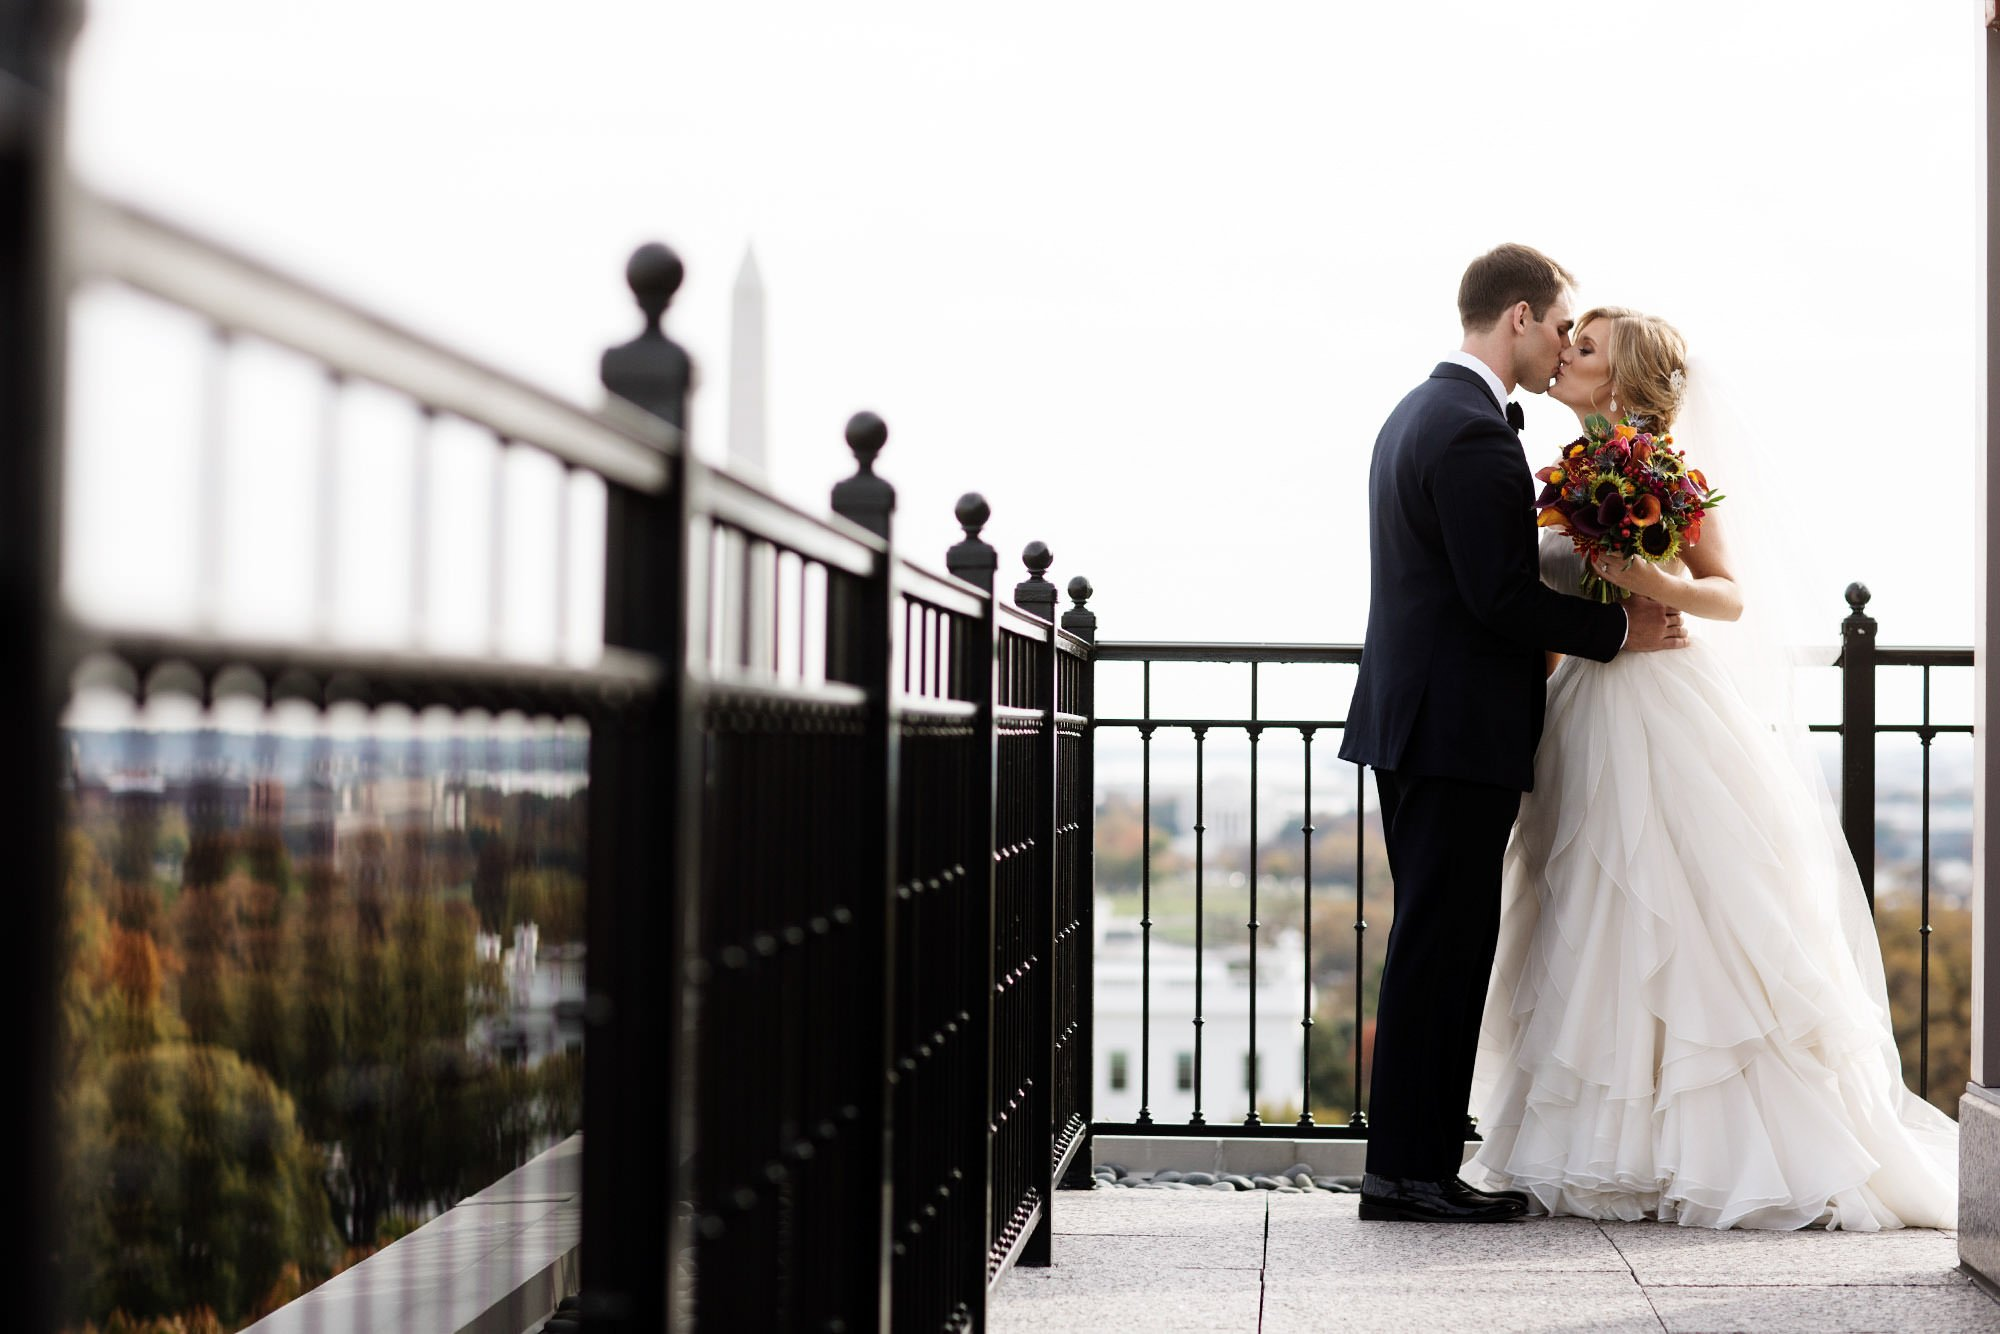 The bride and groom kiss on the patio of the Hay Adams Hotel in Washington, DC before their wedding ceremony.